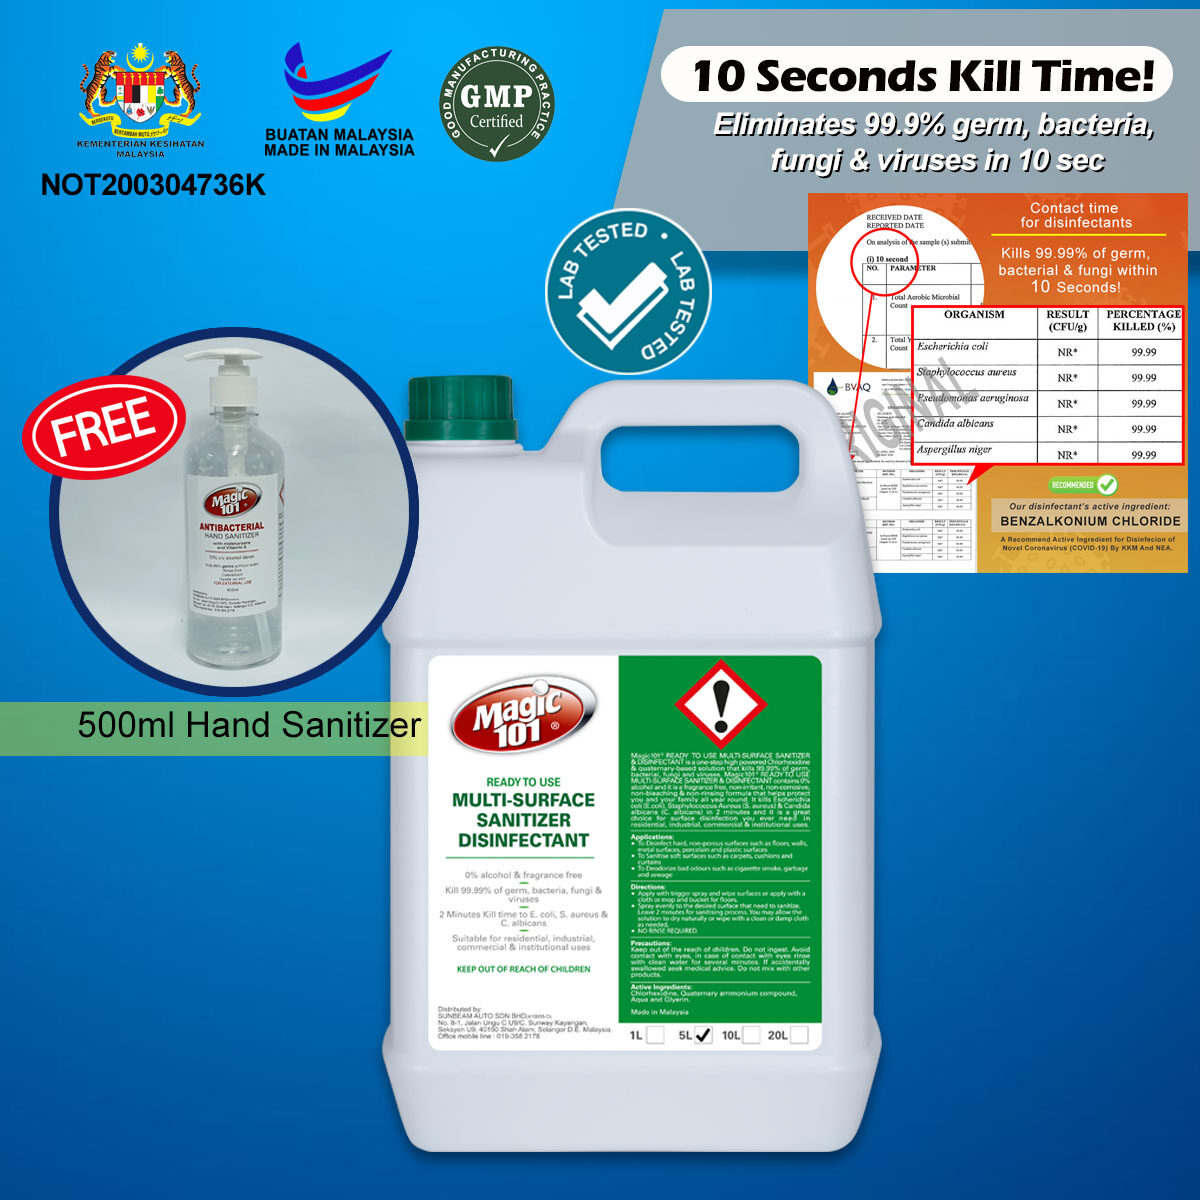 IPA / Alcohol-Free Magic101 Anti-Bacterial Multi Hard Surface Sanitizer Disinfectant Cleaner (READY TO USE) 5 Liter FREE Hand Sanitizer 500ml